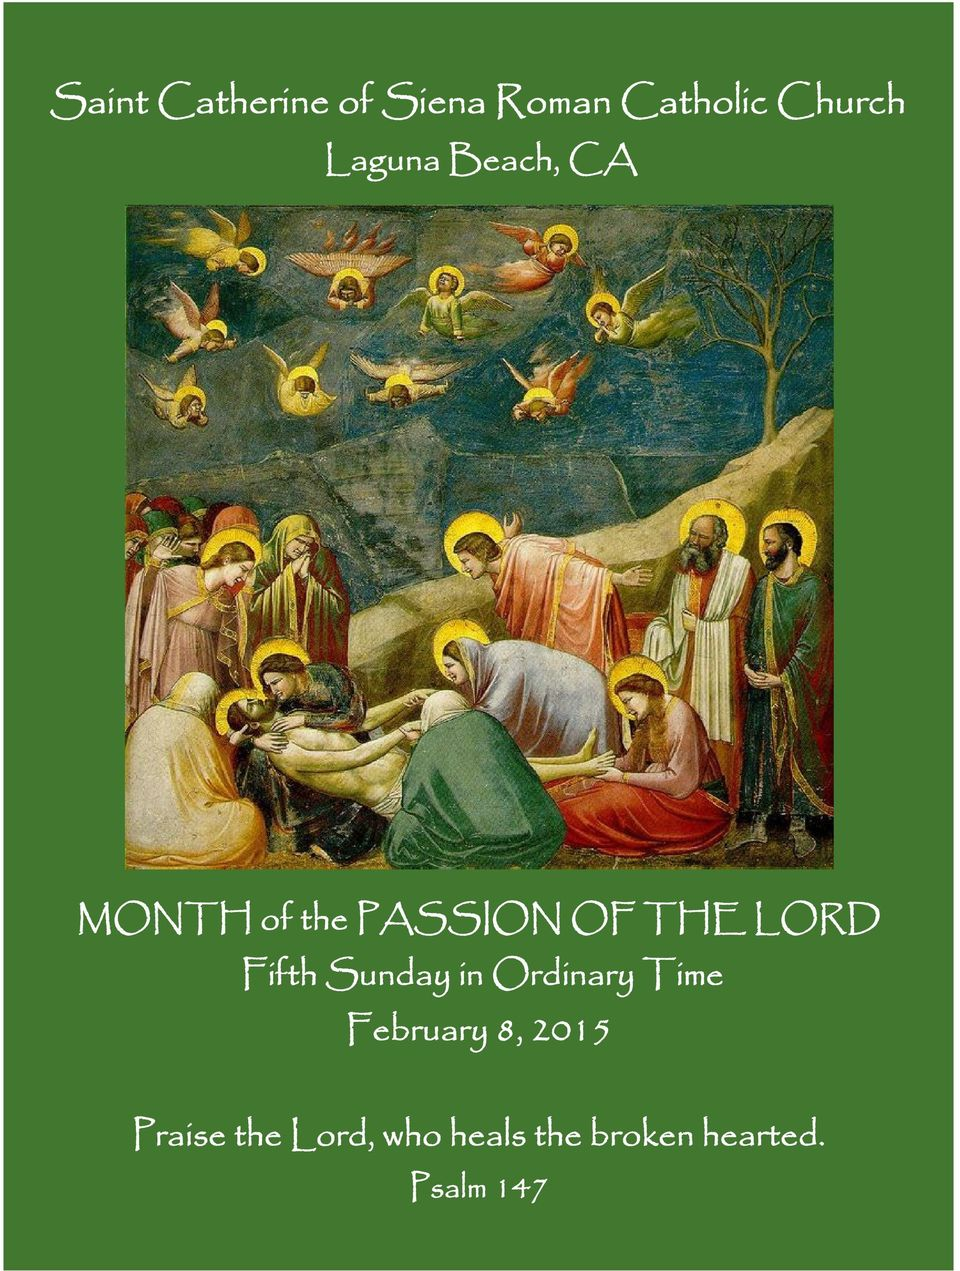 Fifth Sunday in Ordinary Time February 8, 2015